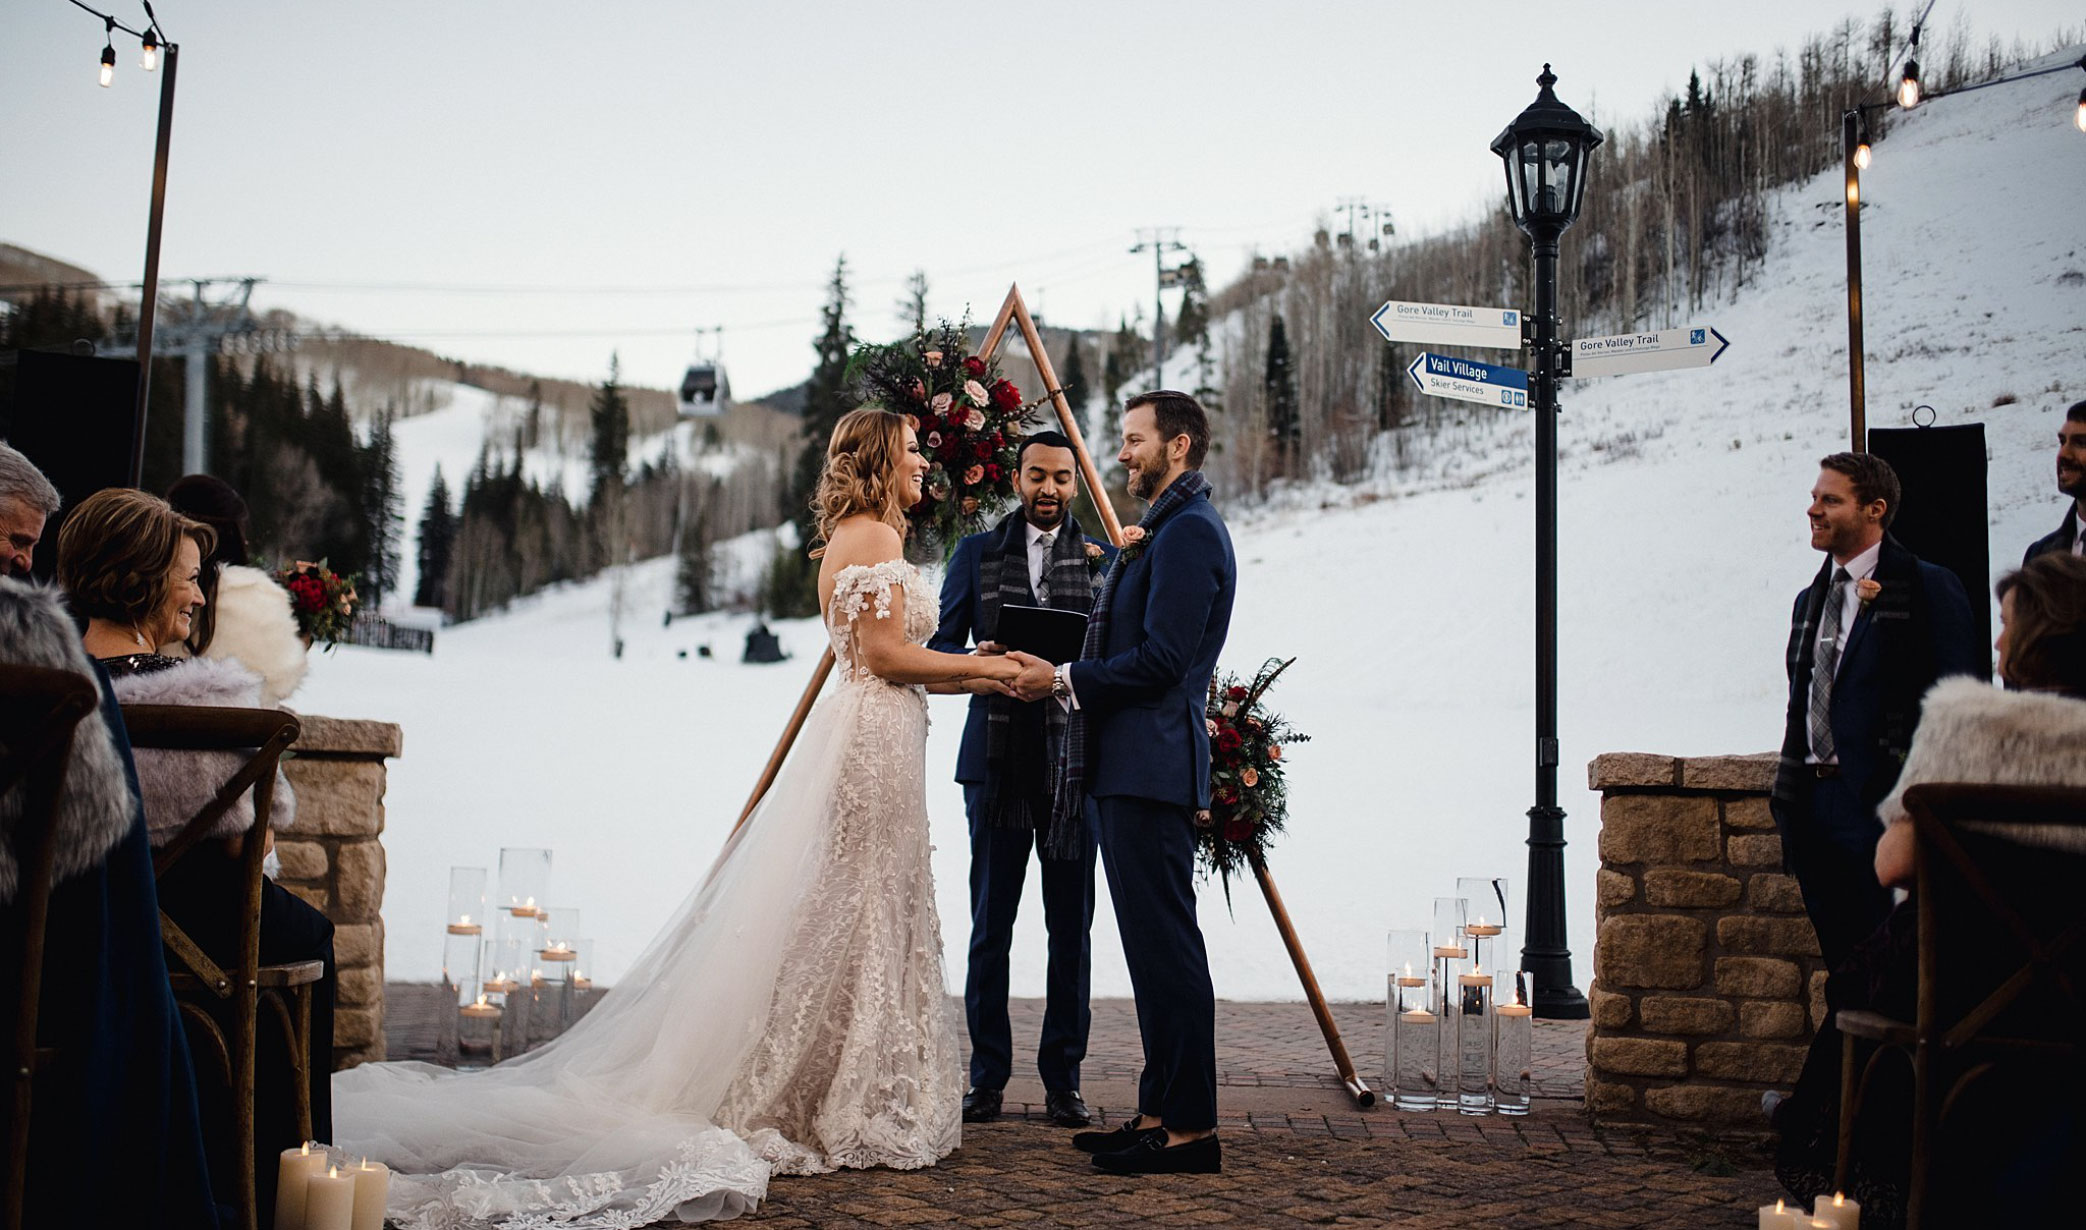 Our dream was to have a snowy, winter wedding in Colorado, yet we knew an outdoor wedding ceremony in December could be difficult to coordinate. After a year of planning with the most incredible team (who we now consider our lifelong friends), we were blessed with the most beautiful, snowy backdrop at the base of Vail Mountain. It was truly breathtaking to walk down the aisle to the stillness and calmness only the mountains, soft snow, and a rosy alpenglow can bring. Thinking back on that moment brings back all the best emotions of the day.